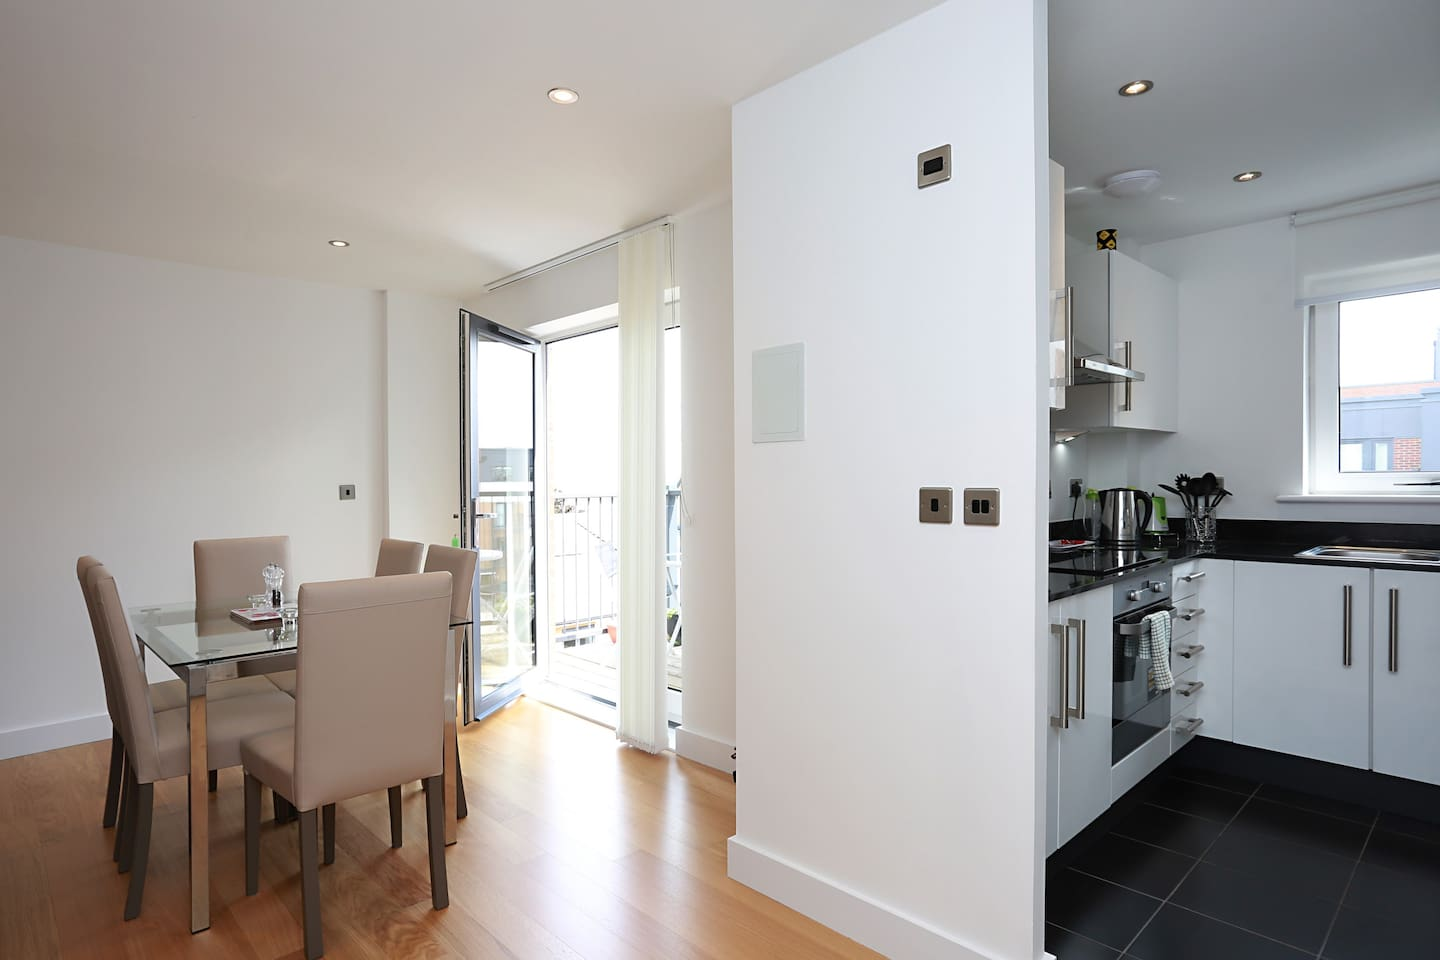 greenwich london near o2 arena apartments for rent in london